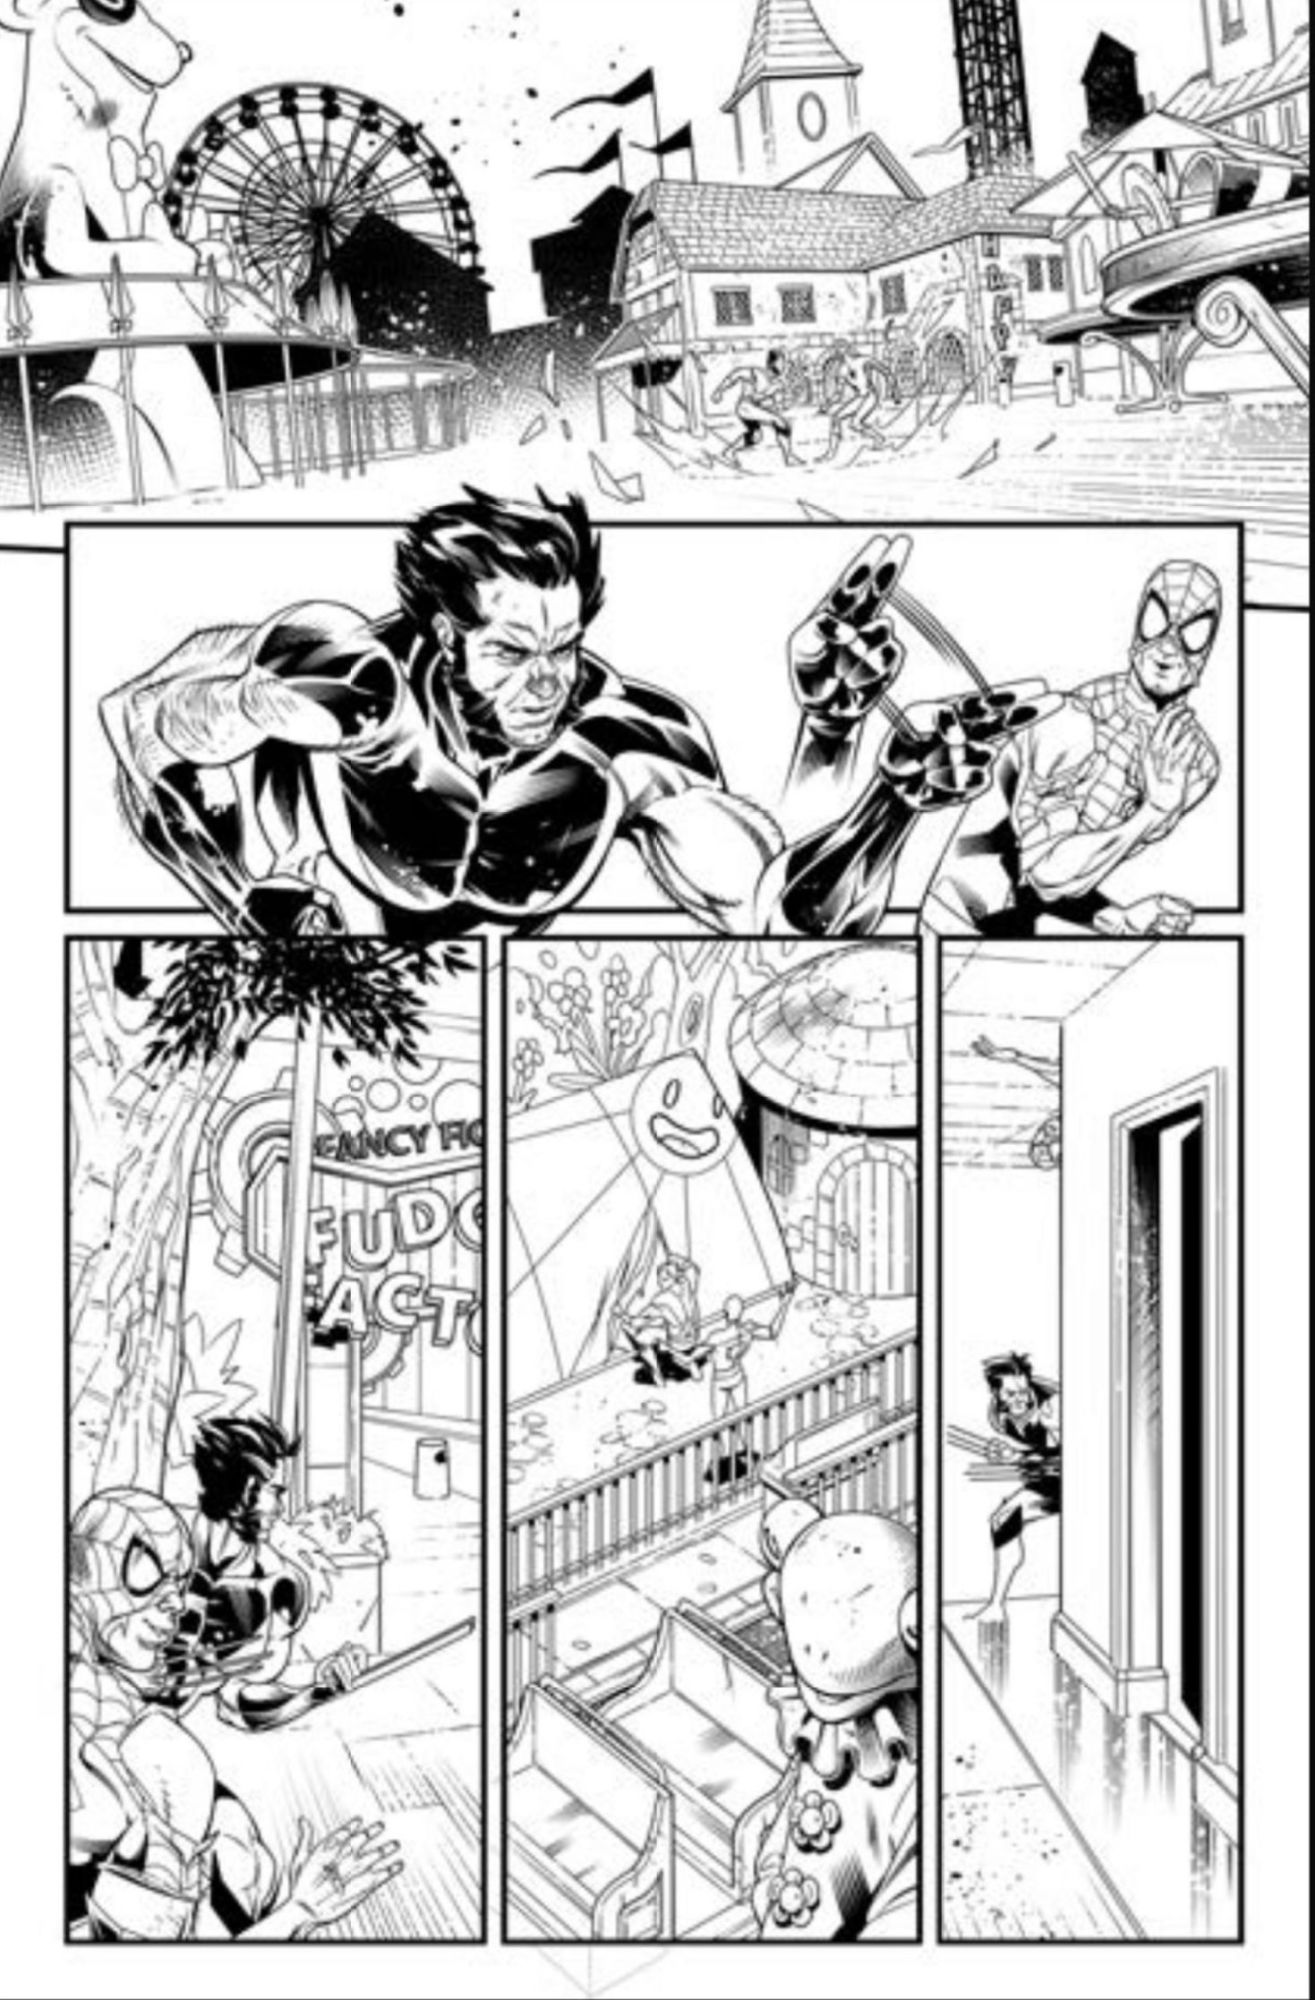 8 Pages From Amazing Spider-Man: Full Circle #1 – With the Biggest